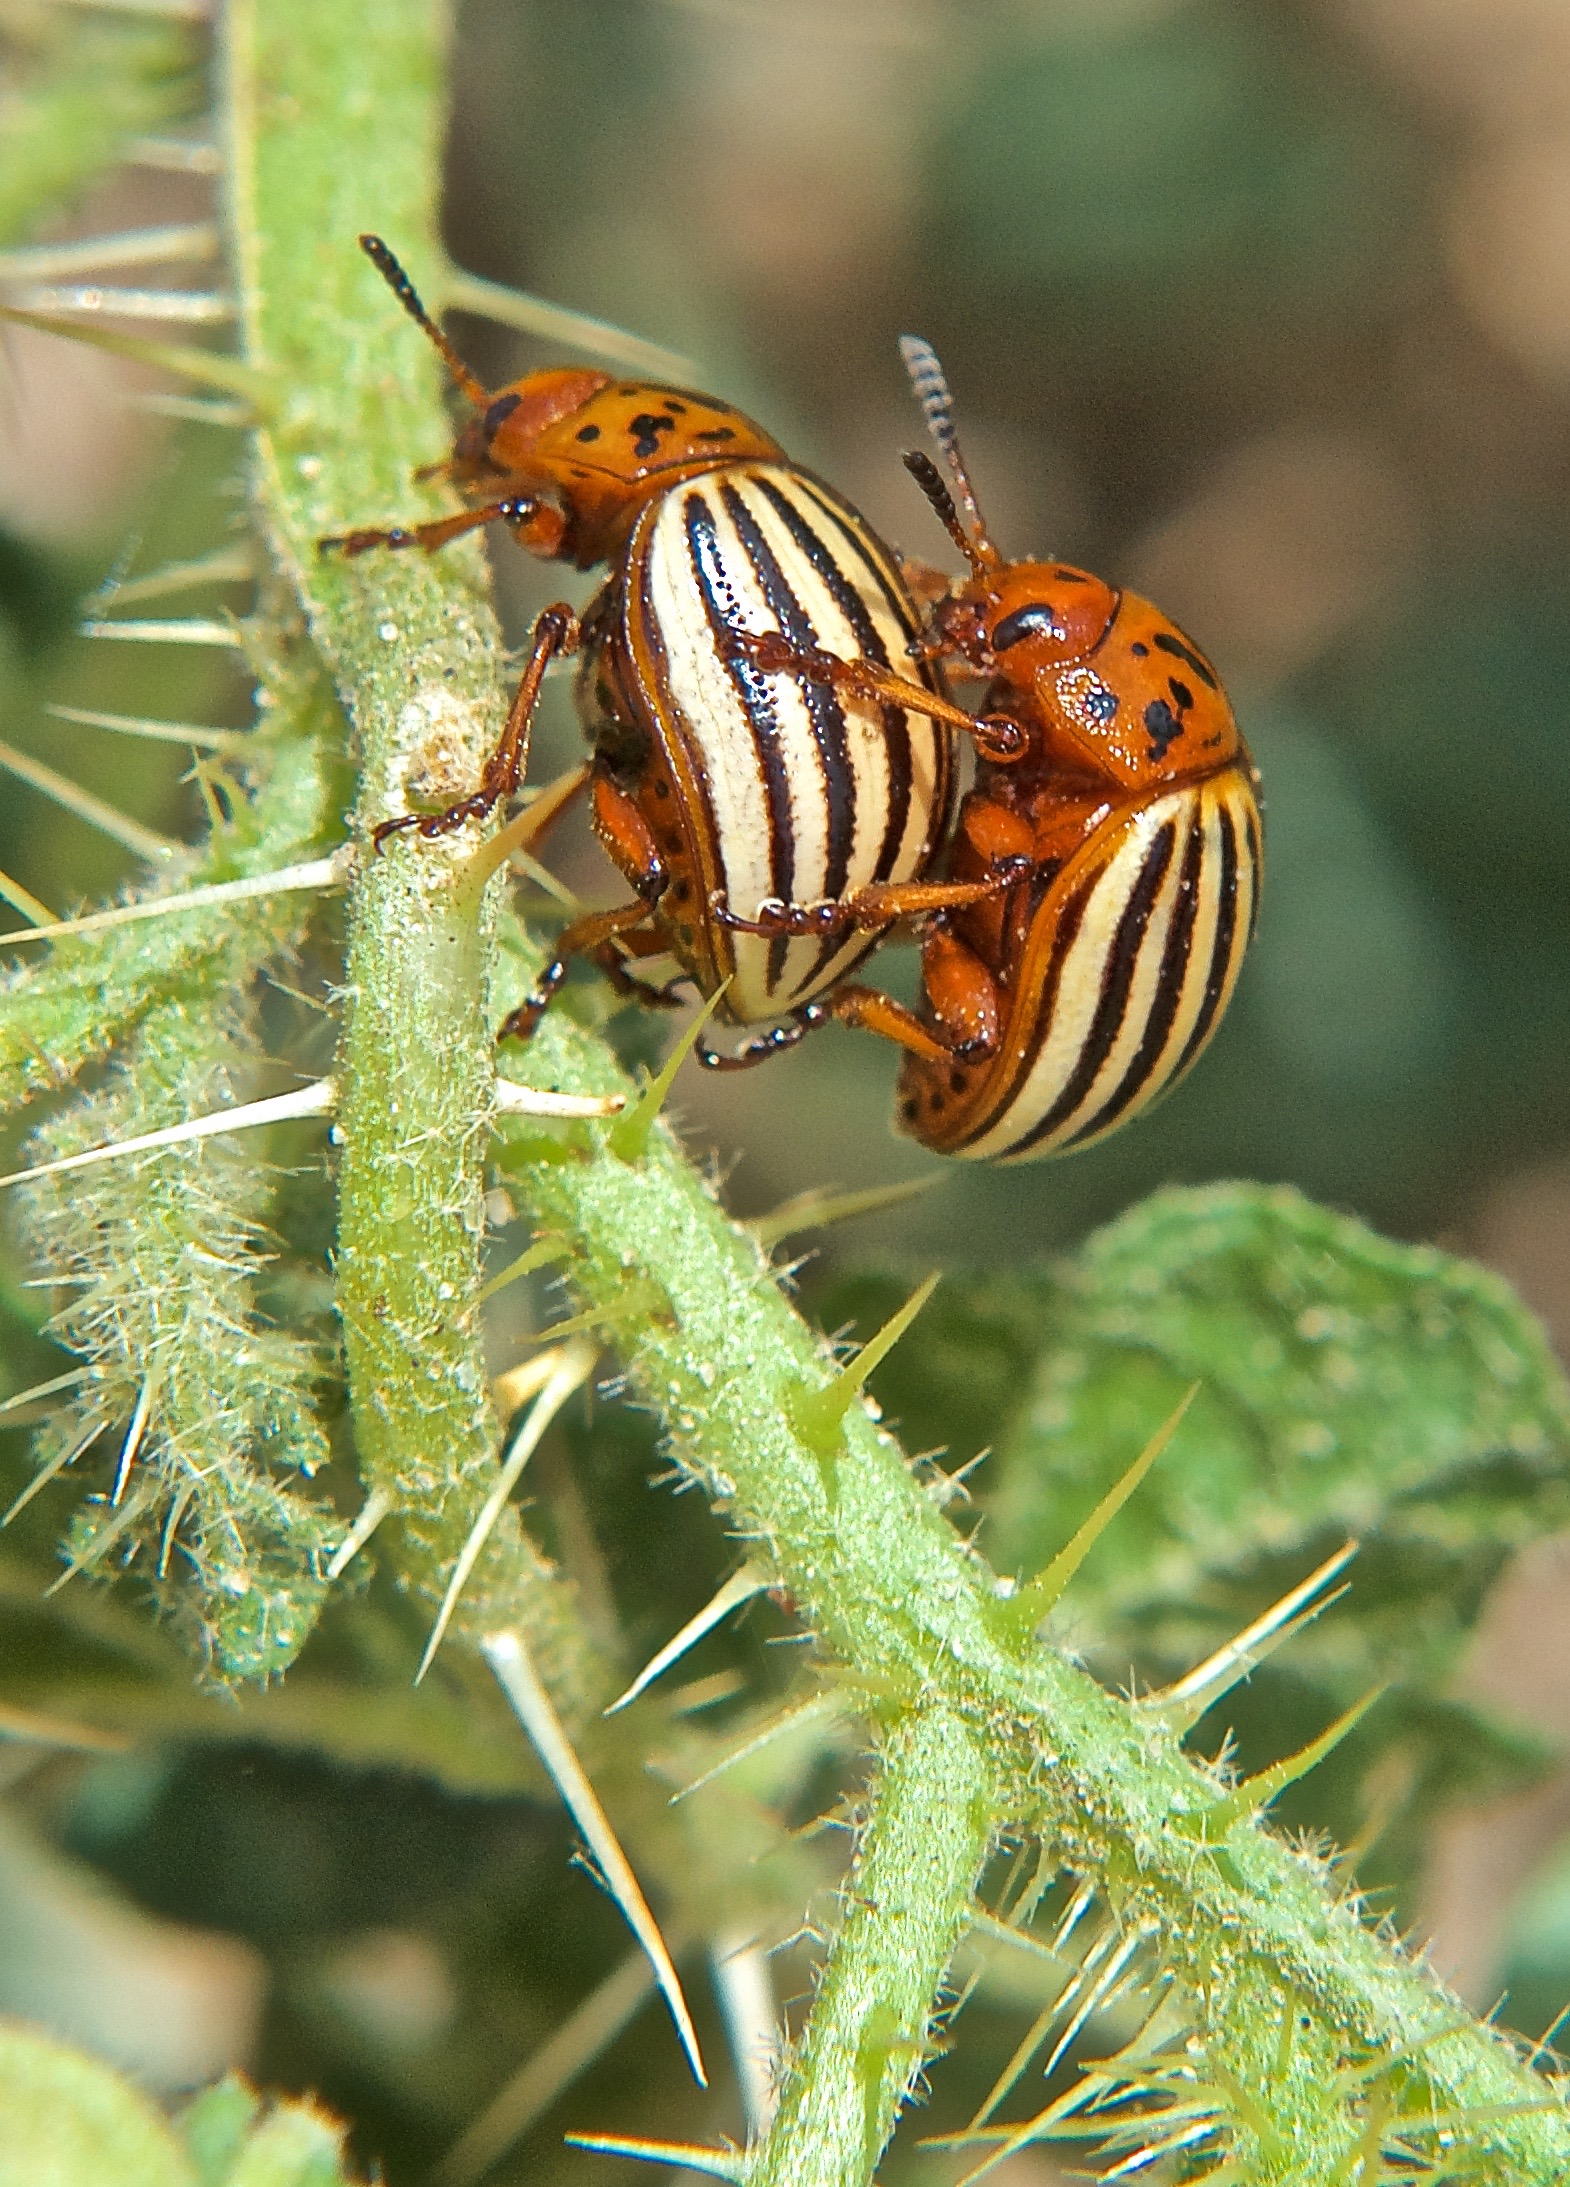 Colorado Potato Beetle on Buffalo-bur